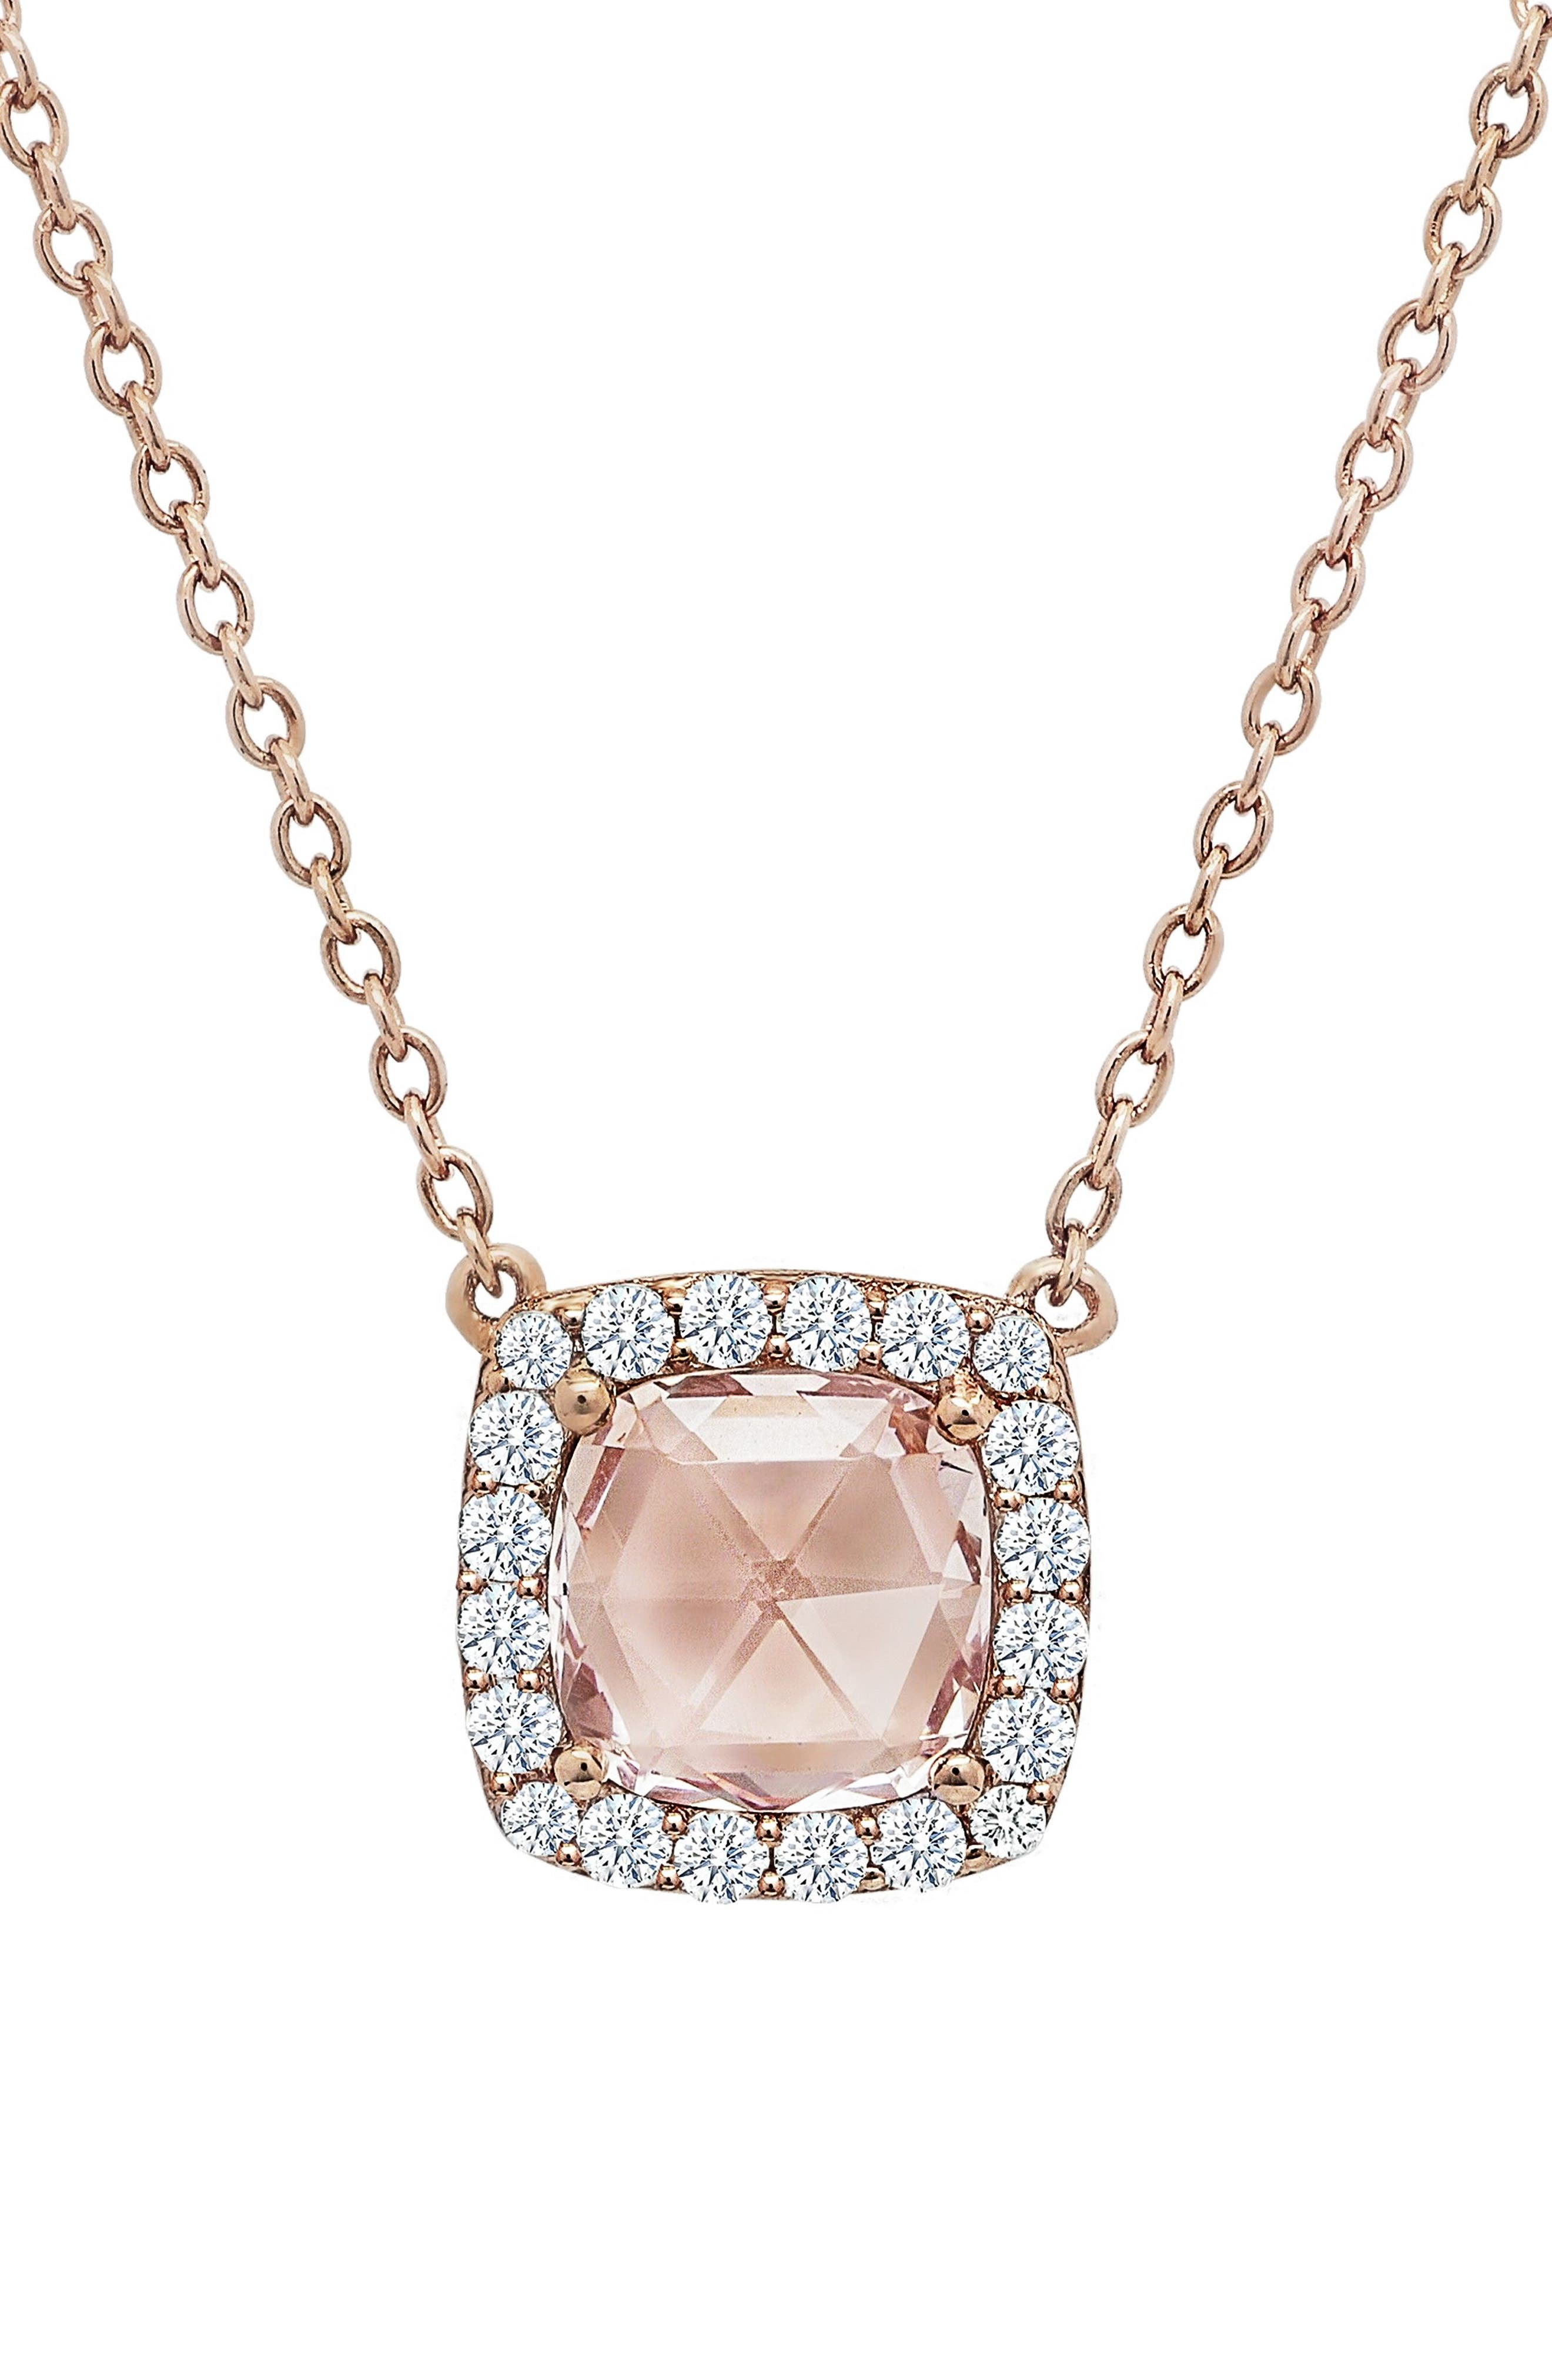 Simulated Diamond Pendant Necklace,                             Main thumbnail 1, color,                             PINK / ROSE GOLD